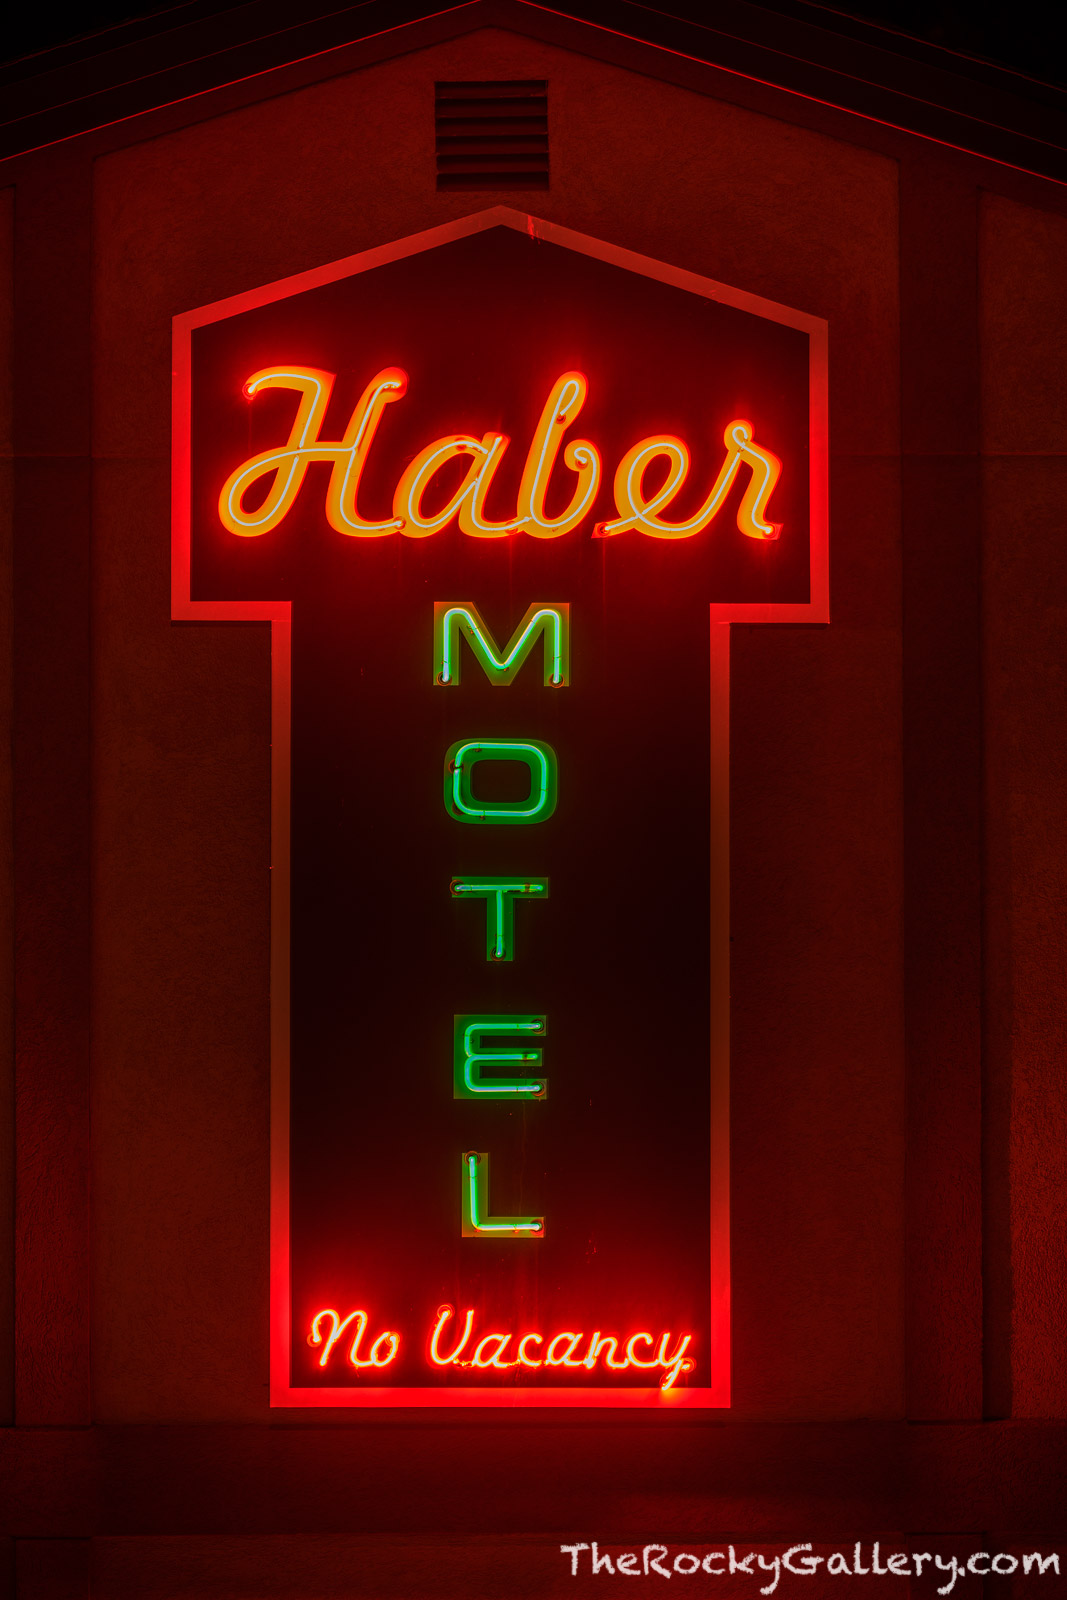 Haber Motel,Neon,Sign,Estes Park,Motel,US 36,US 34,Colorado,Elkhorn Ave,RMNP,Rocky Mountain National Park,Photography,Downtown,Lodging, photo